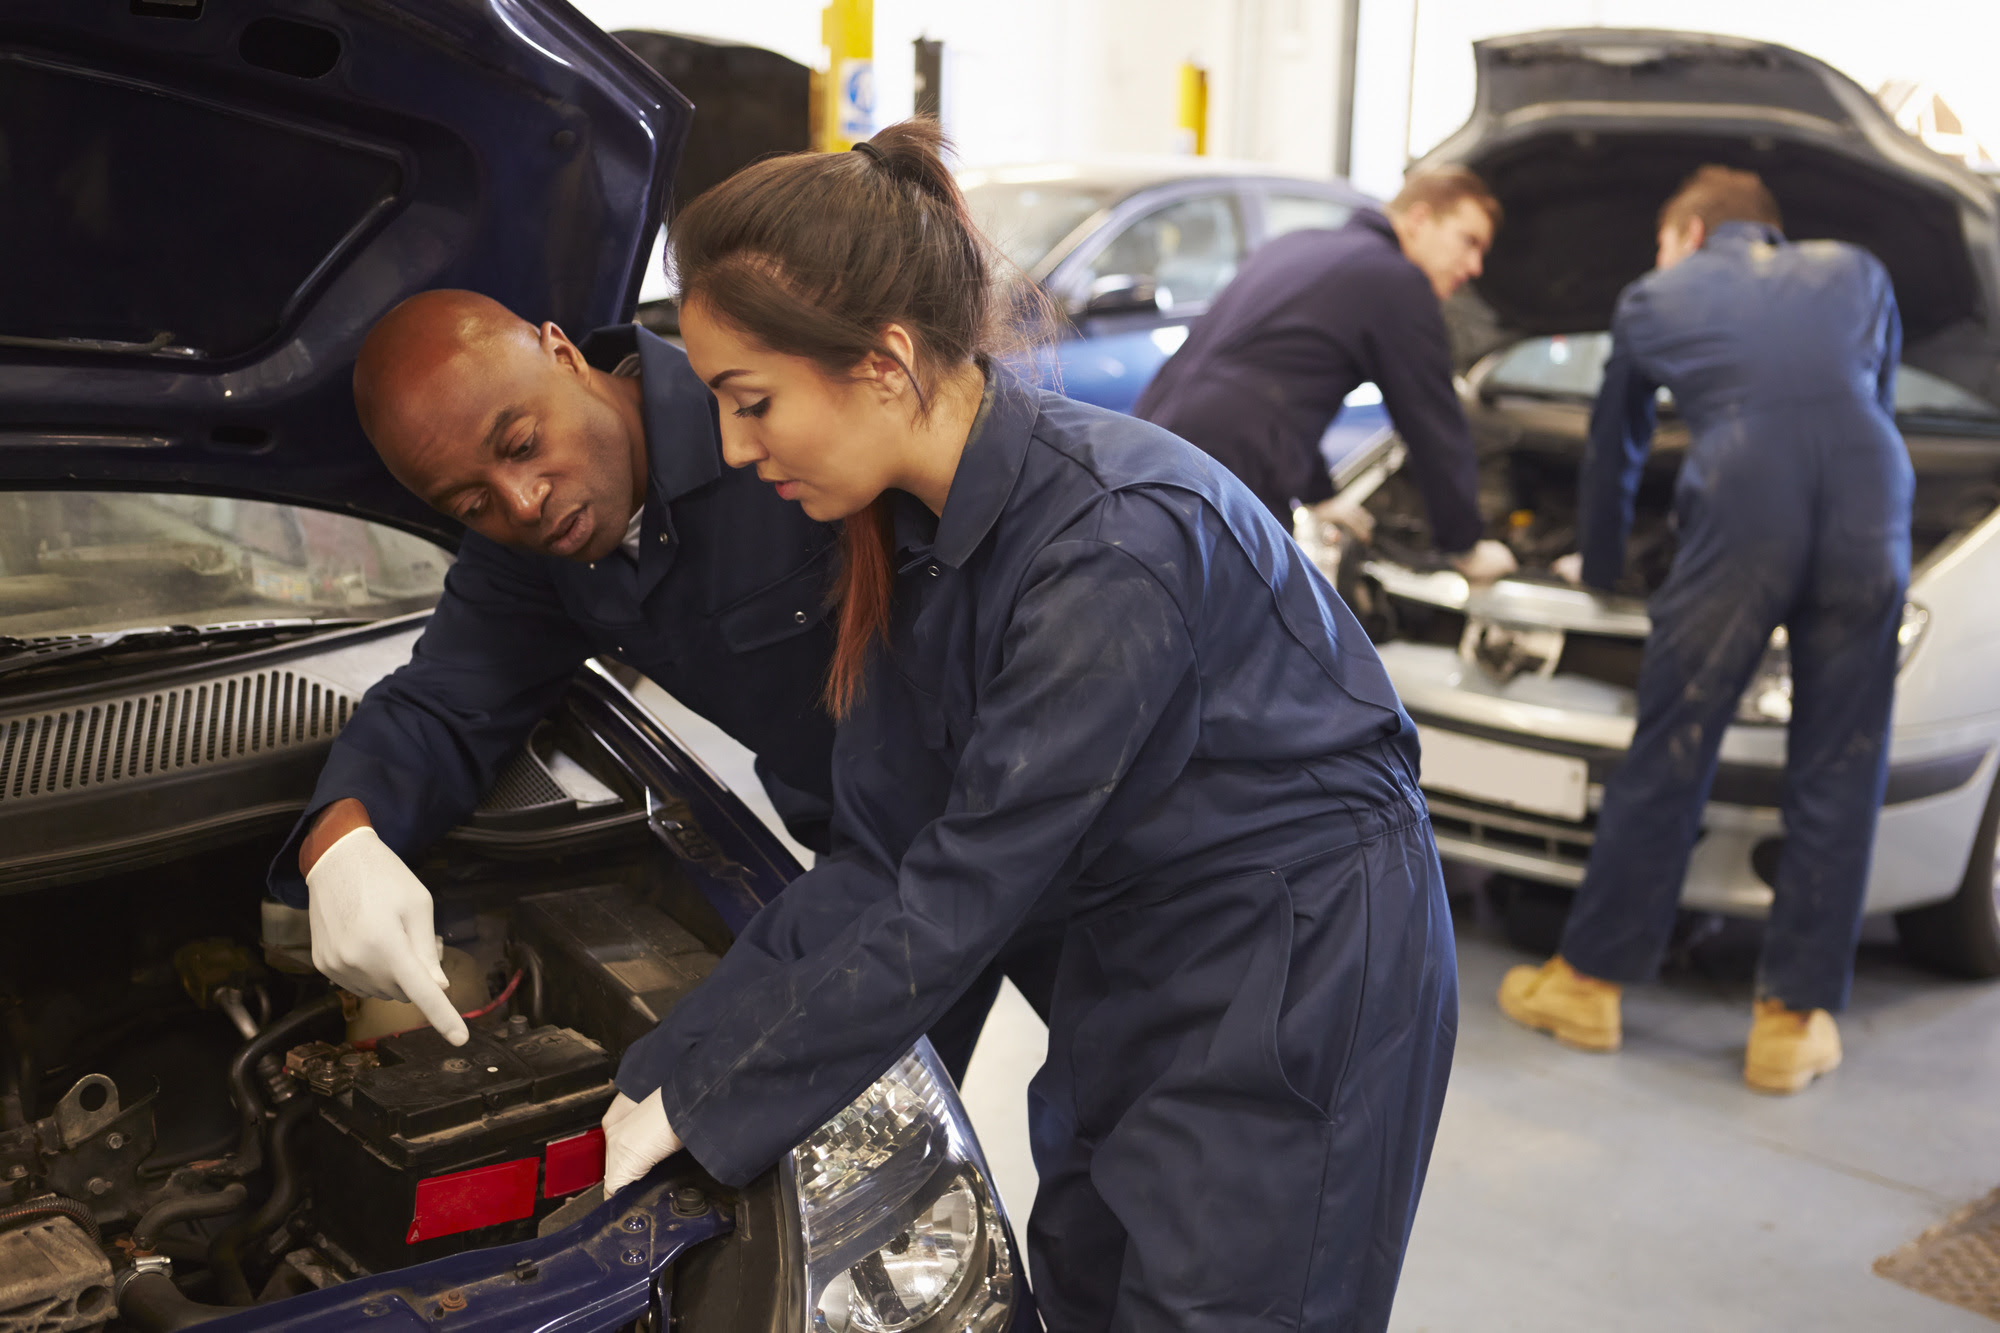 What's the Best College for Becoming a Mechanic? - USA ...